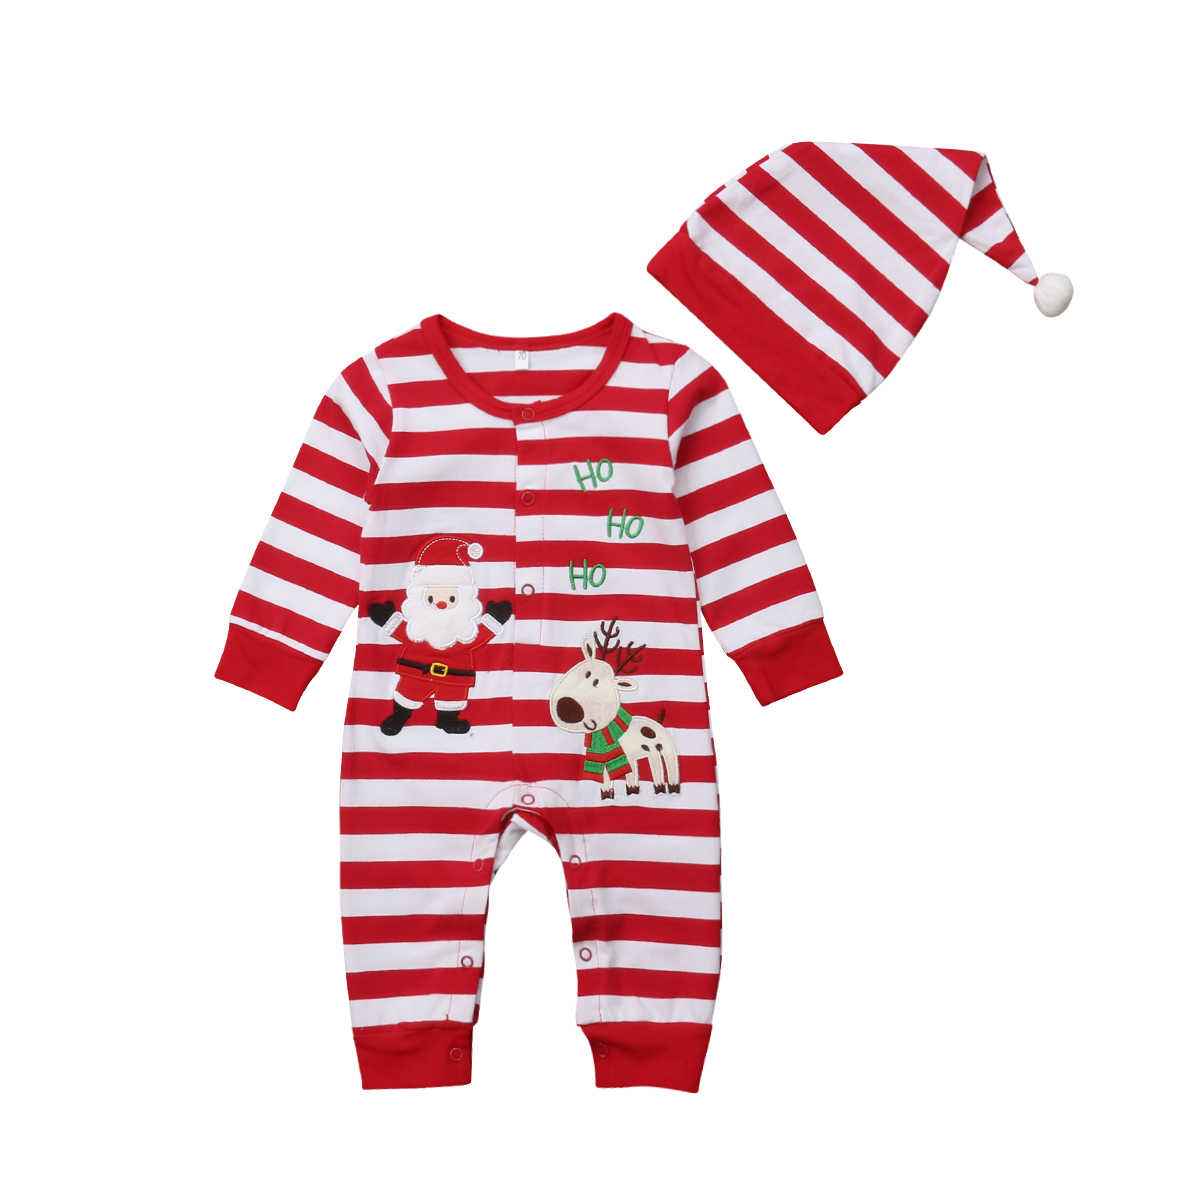 6a1704f21 Detail Feedback Questions about Christmas Rompers Long Sleeve Baby ...